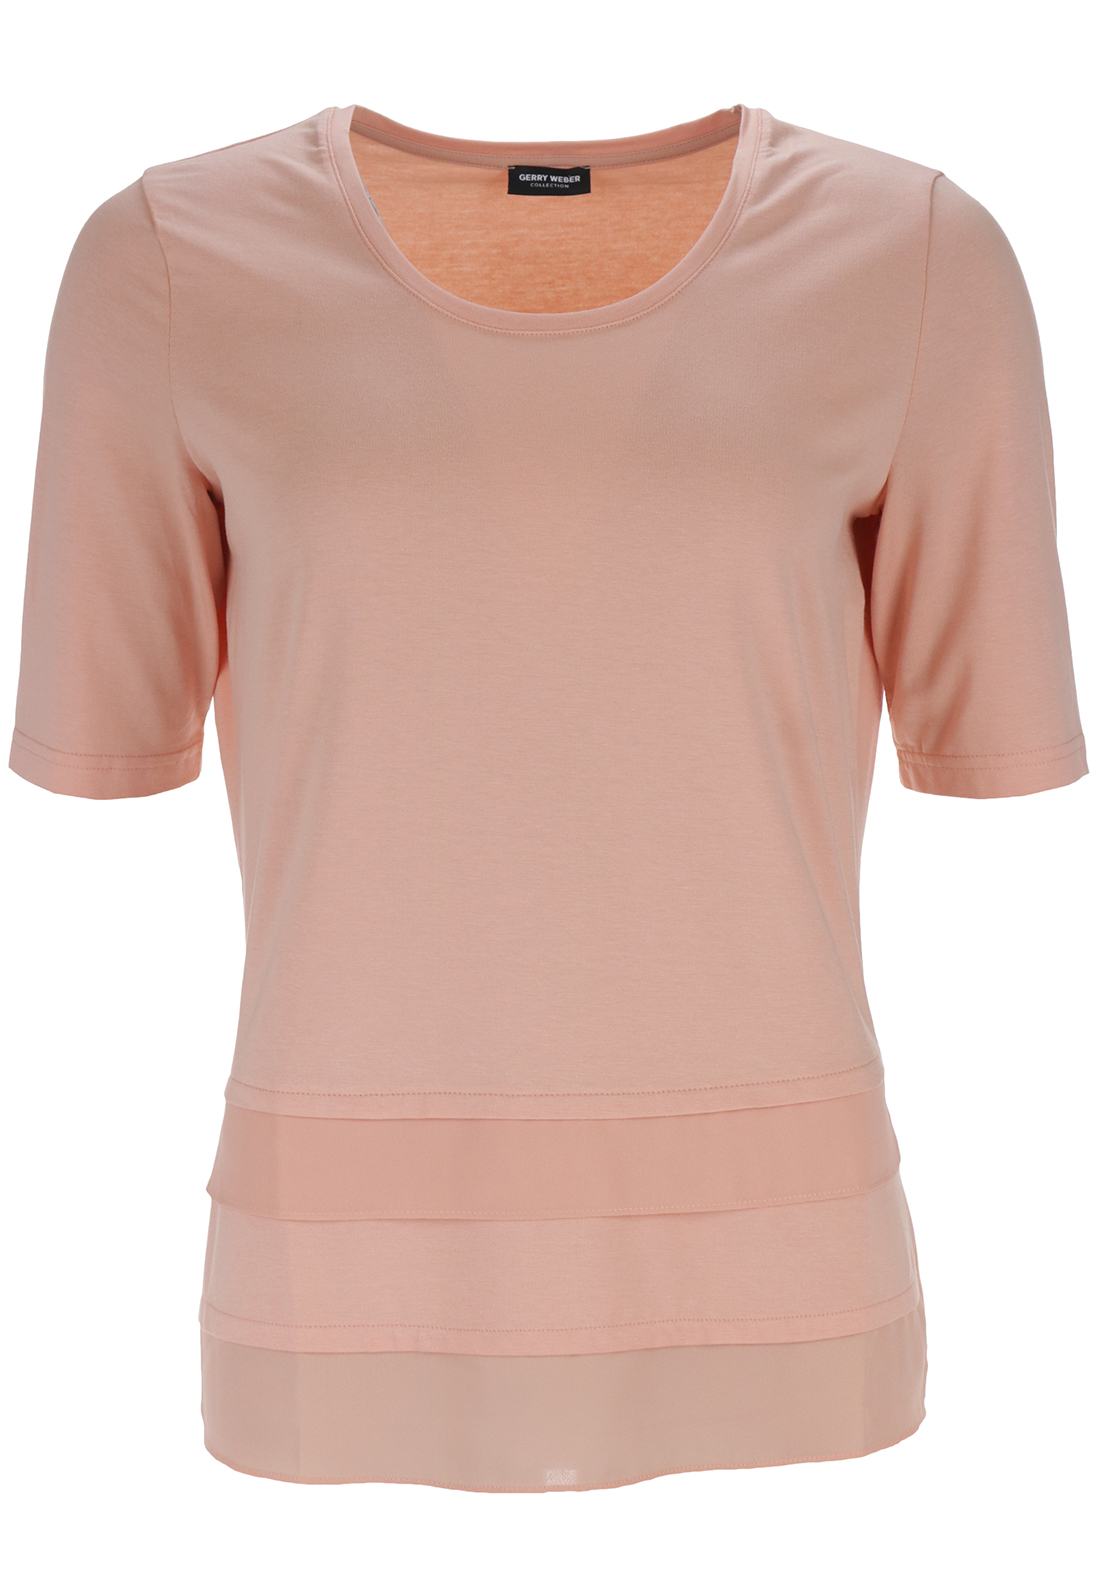 Gerry Weber Chiffon Trim Top, Peach